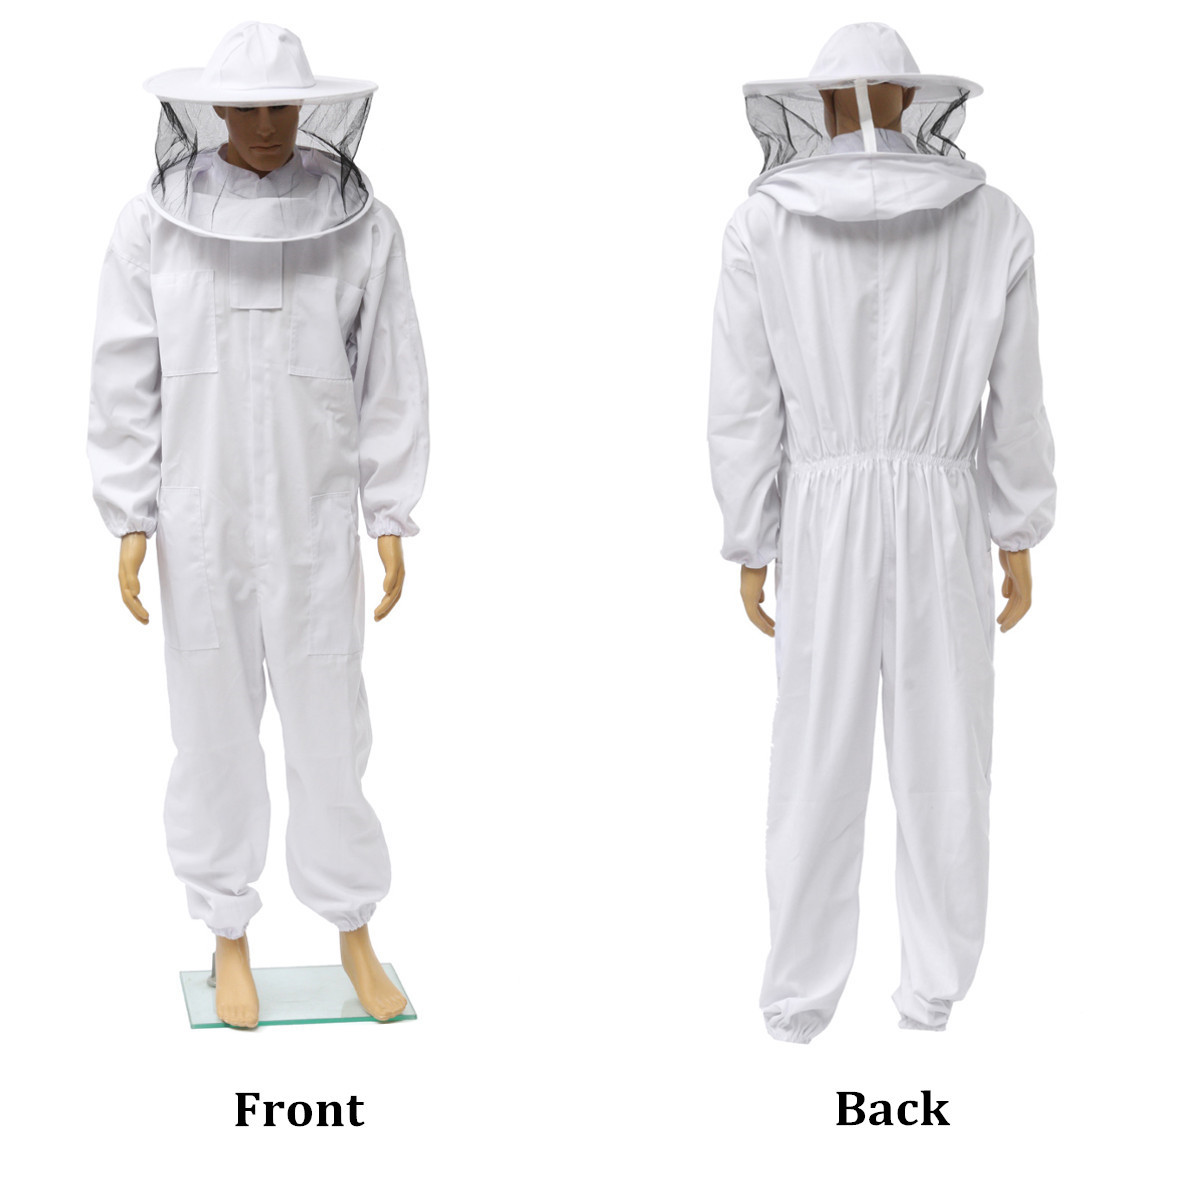 HTB1ZCqQisj B1NjSZFHq6yDWpXaX - Beekeepers Full Body Beekeeping Clothing Professional Bee Protection